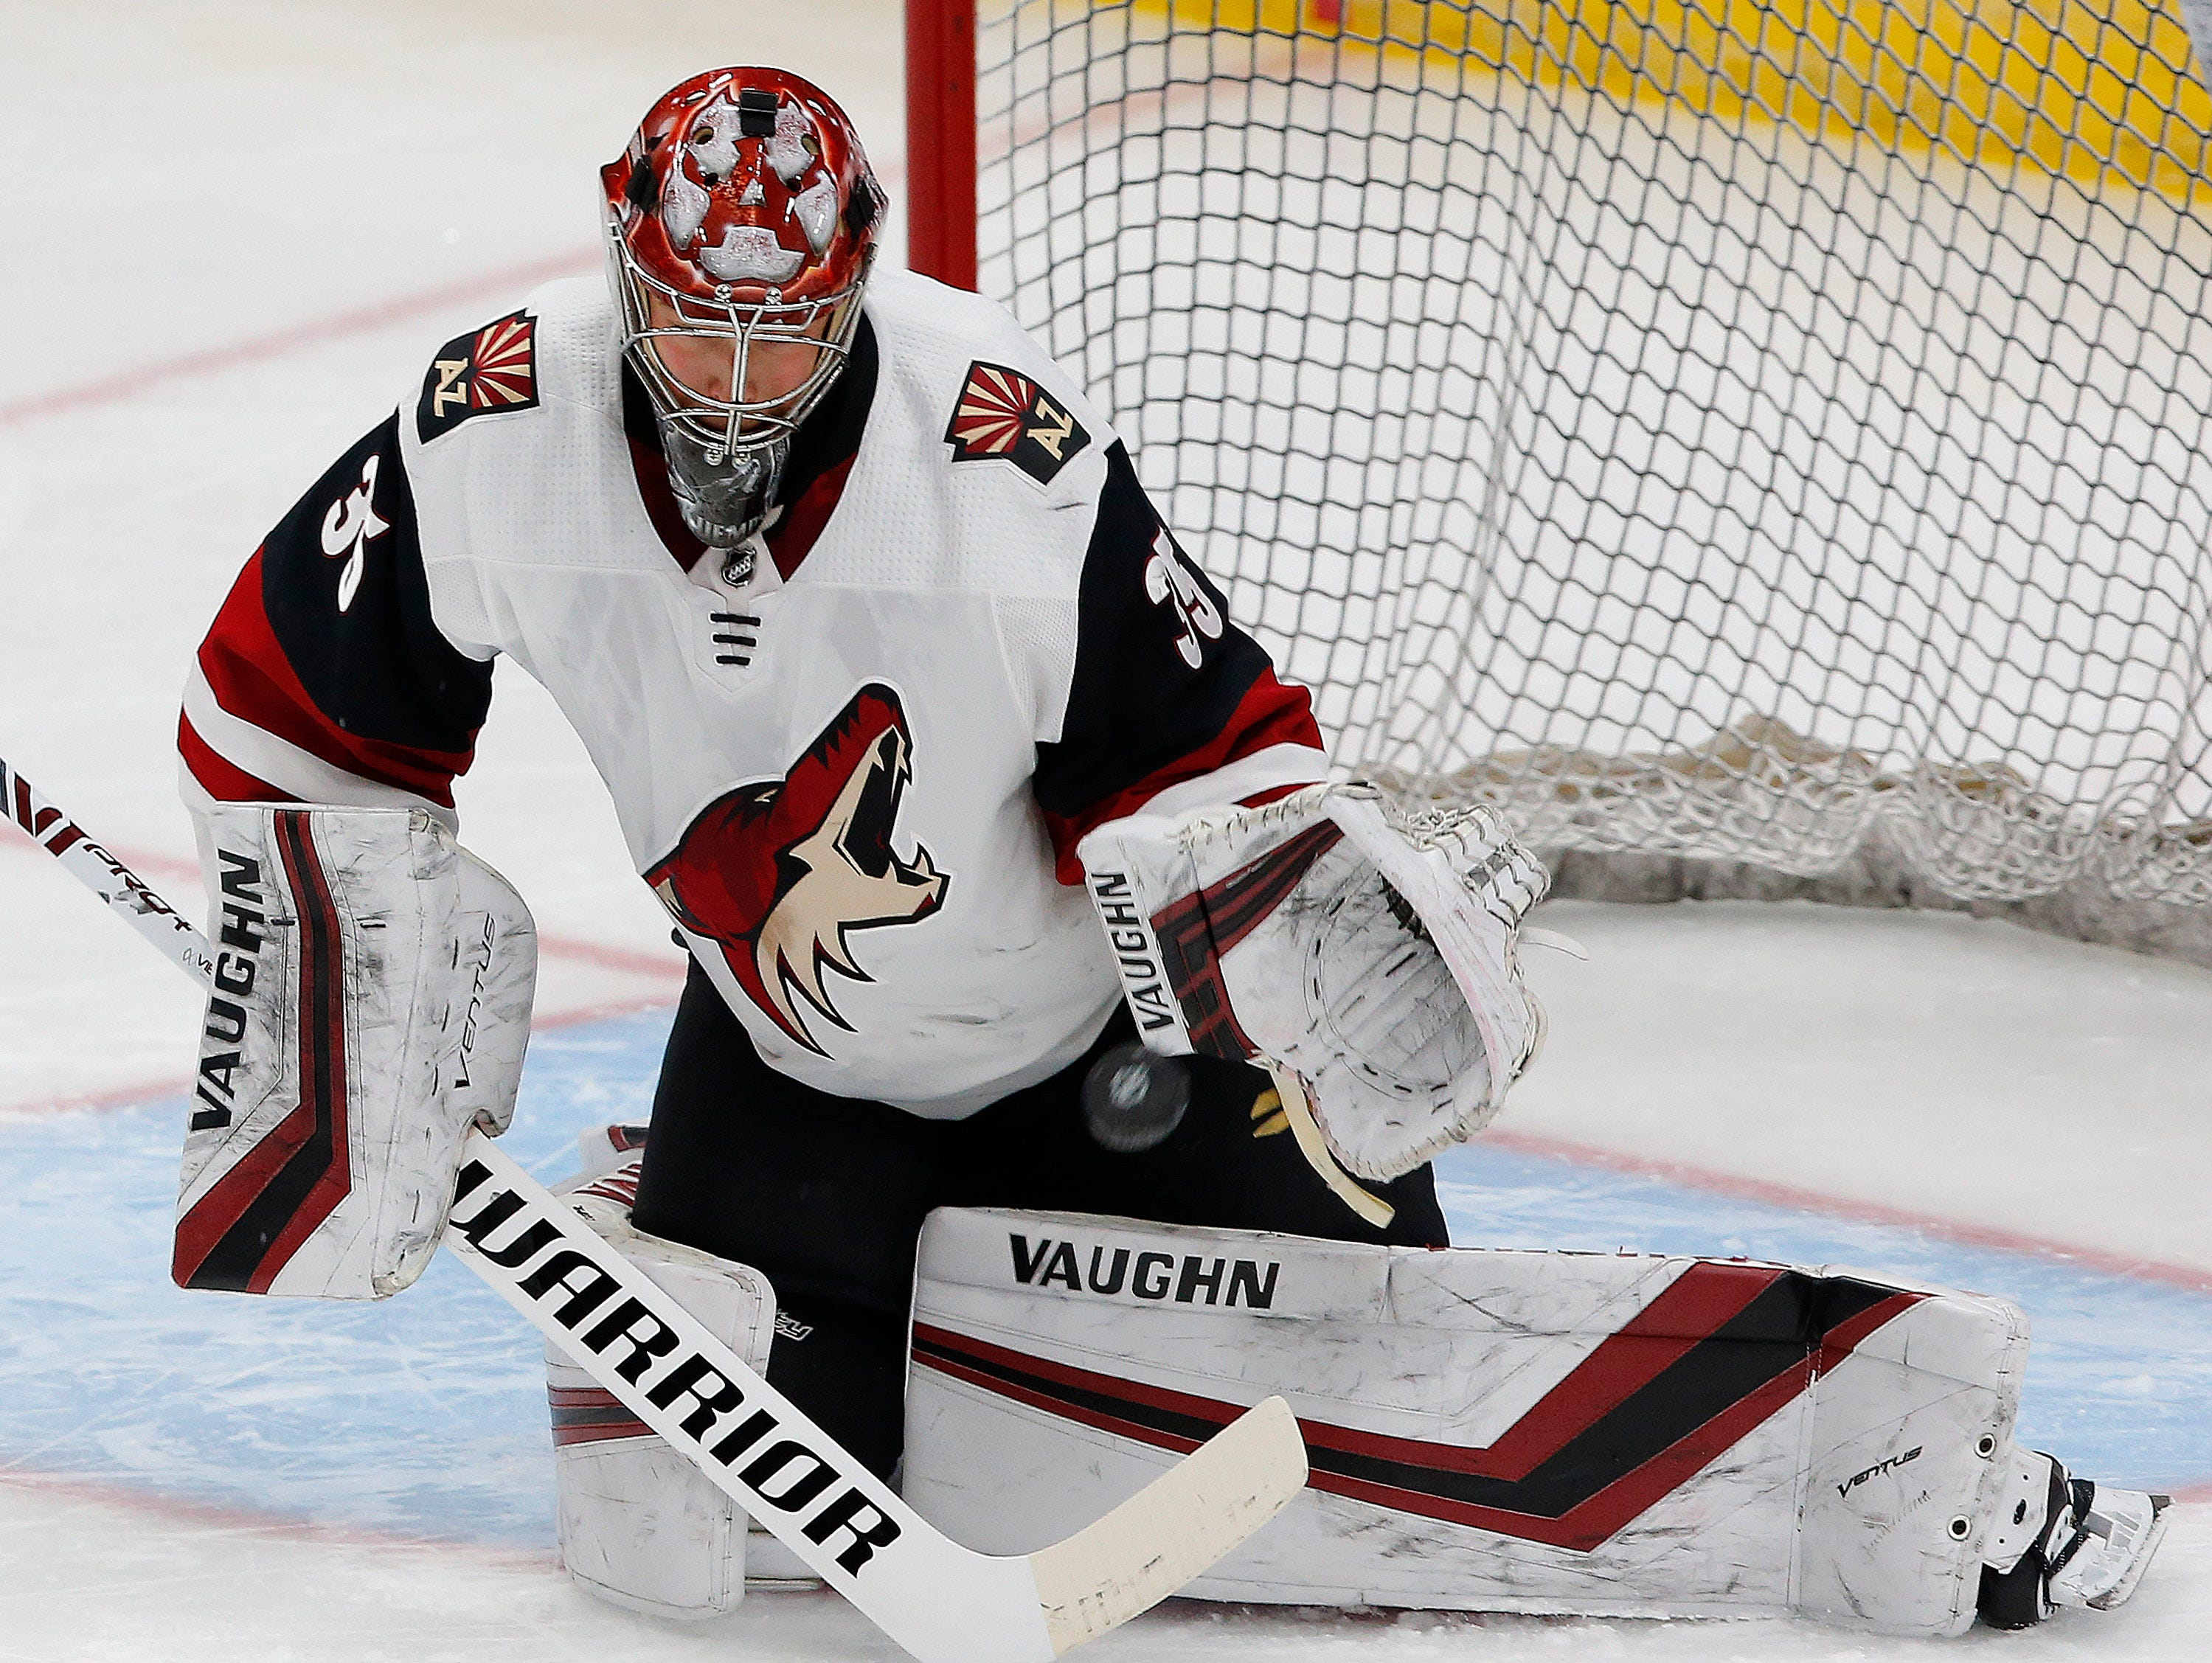 Feb 19, 2019; Edmonton, Alberta, CAN; Arizona Coyotes goaltender Darcy Kuemper (35) makes a save during warmup against Edmonton Oilers at Rogers Place. Mandatory Credit: Perry Nelson-USA TODAY Sports